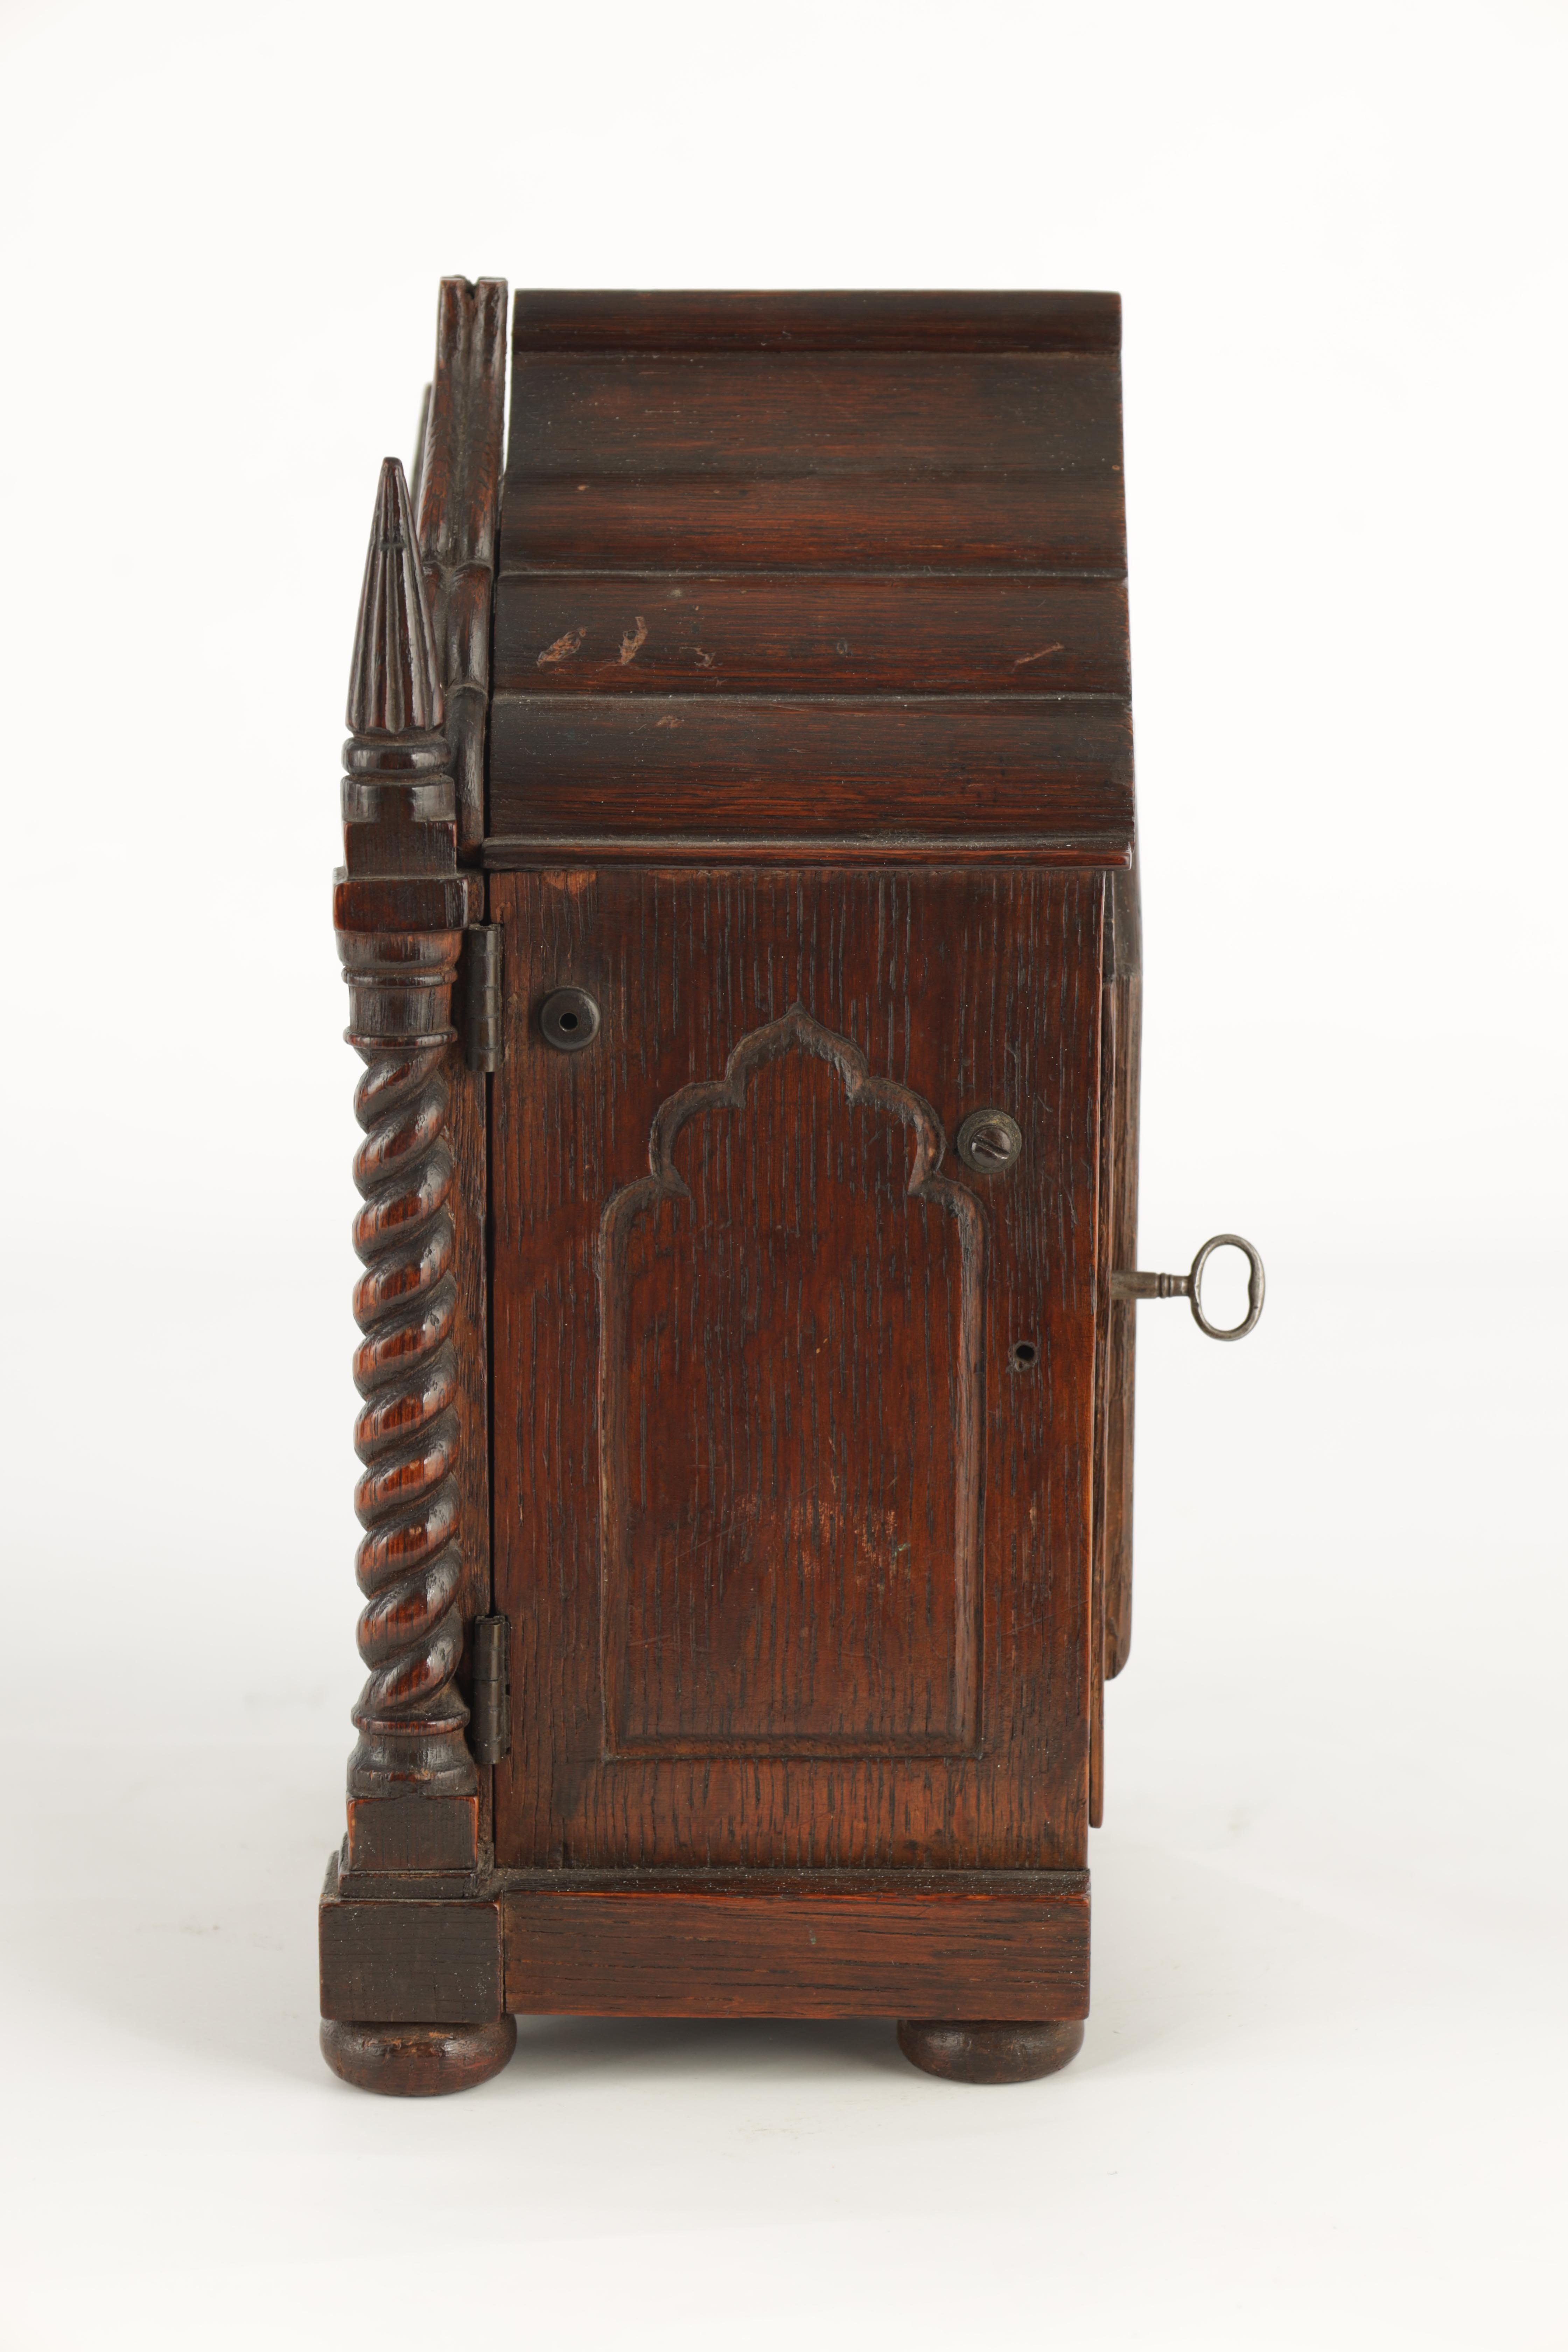 A SMALL MID 19TH CENTURY OAK CASED DOUBLE FUSEE MANTEL CLOCK the gothic style case with twisted - Image 6 of 7